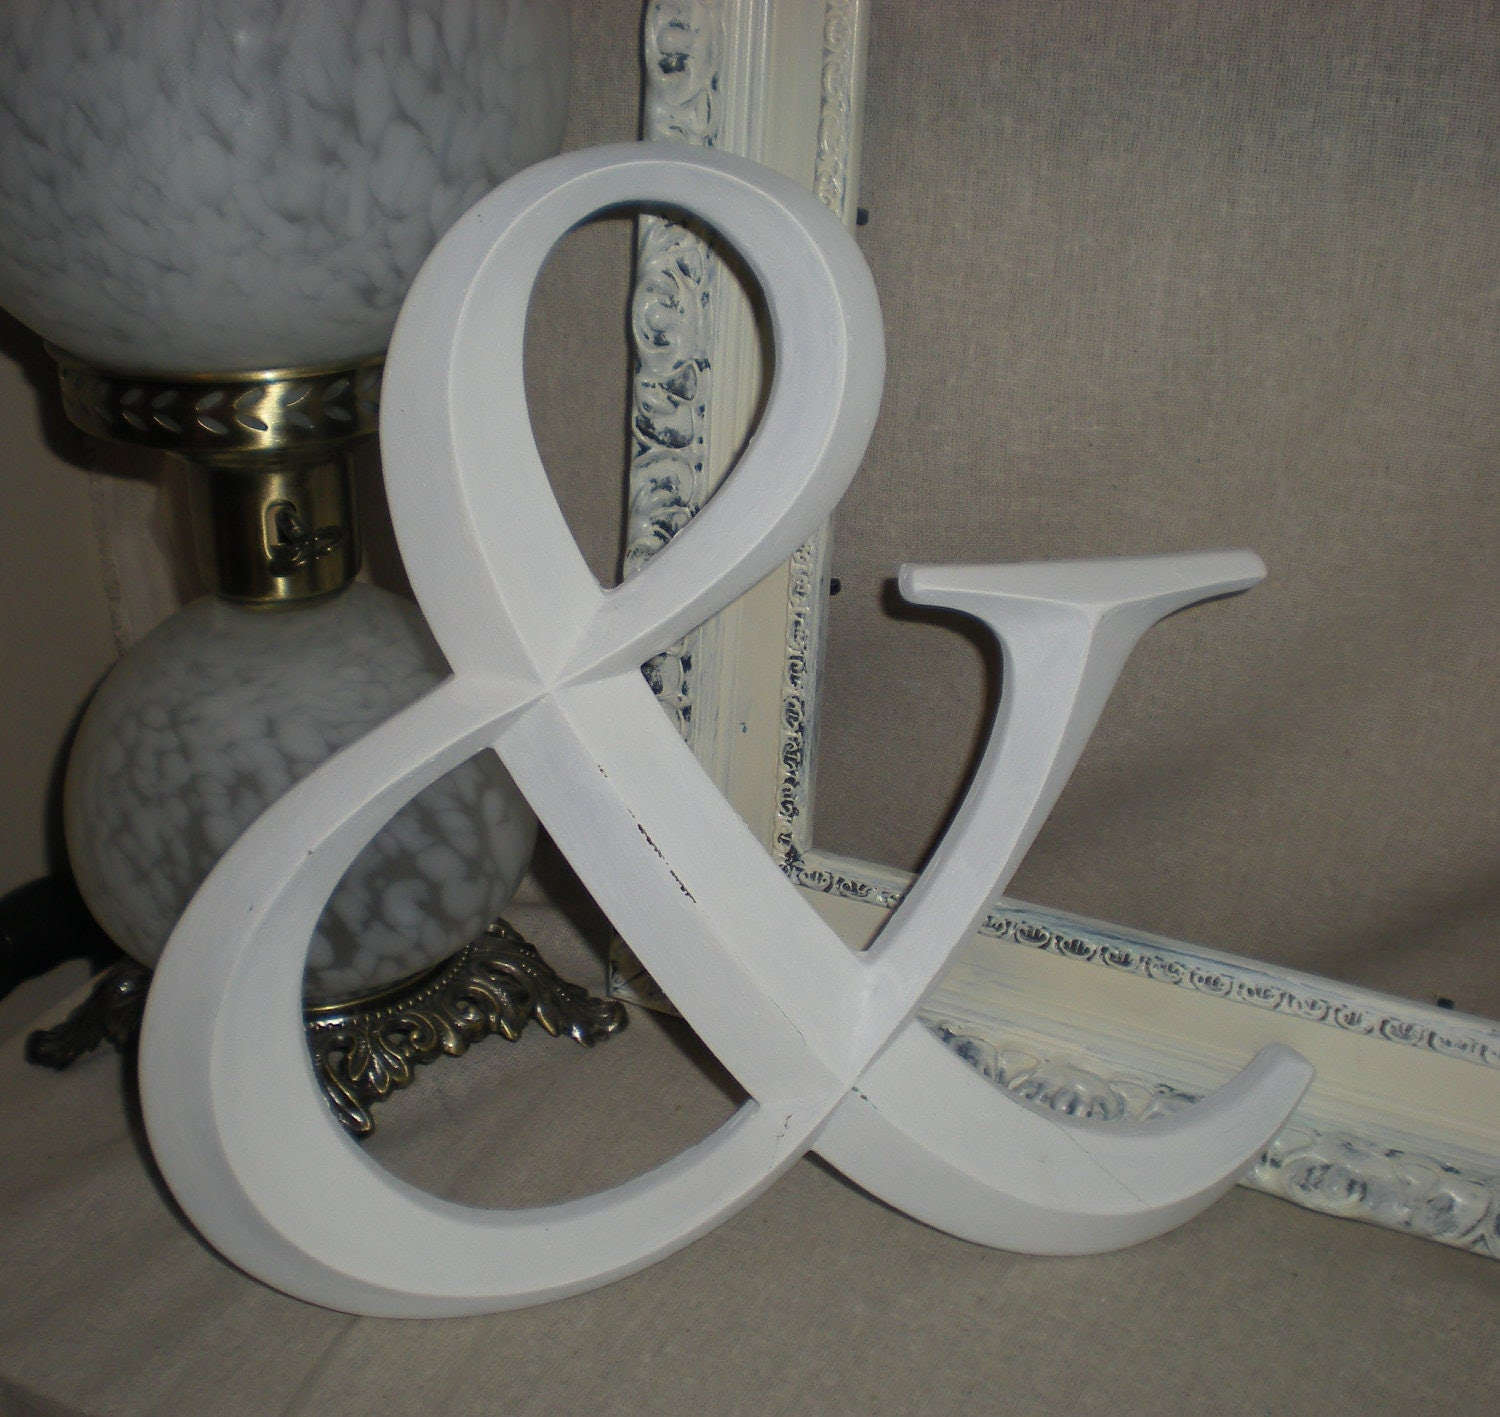 White AmpersandAND SignAlphabet Letters AW by KellyKustomKreations